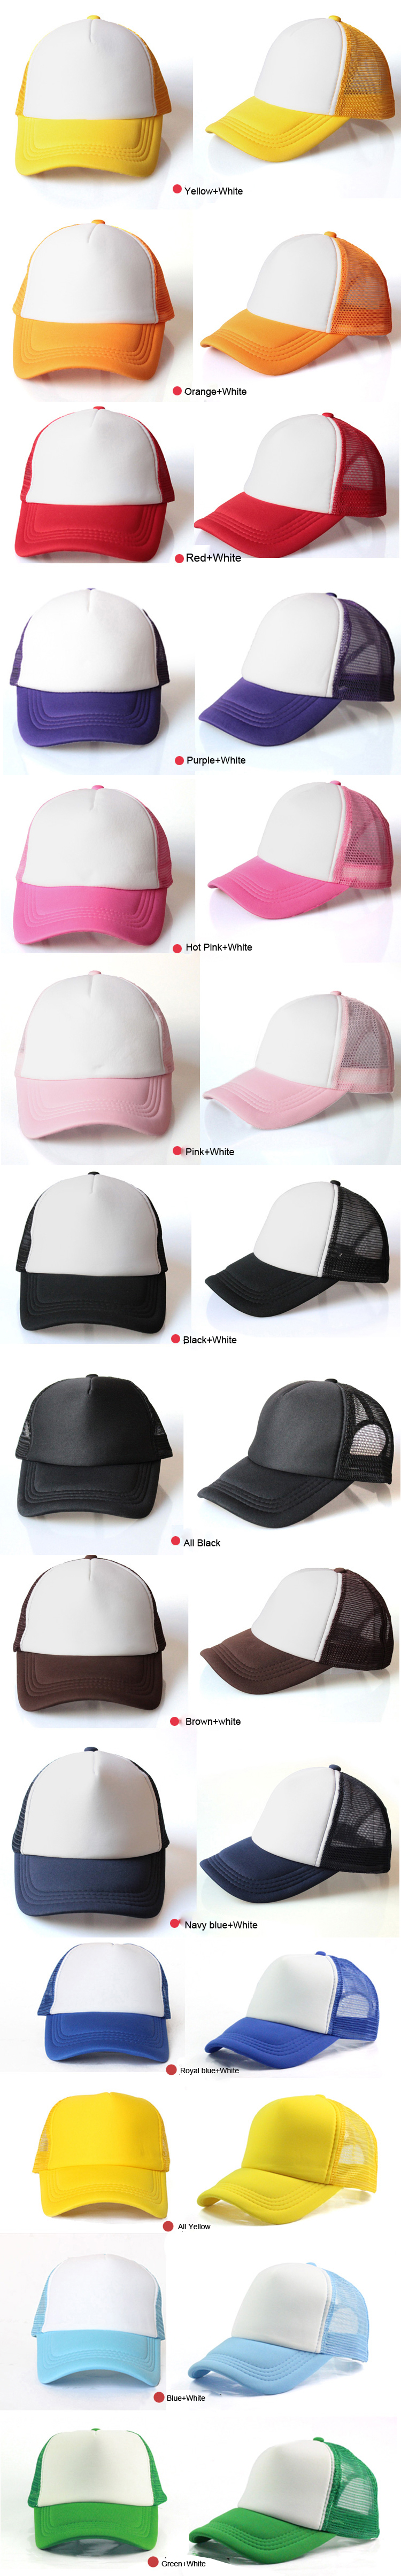 Hat Pink Without Logo 100% Twill Washed Toddler Multi Color 2 Tone Baseball Cap Cotton Green